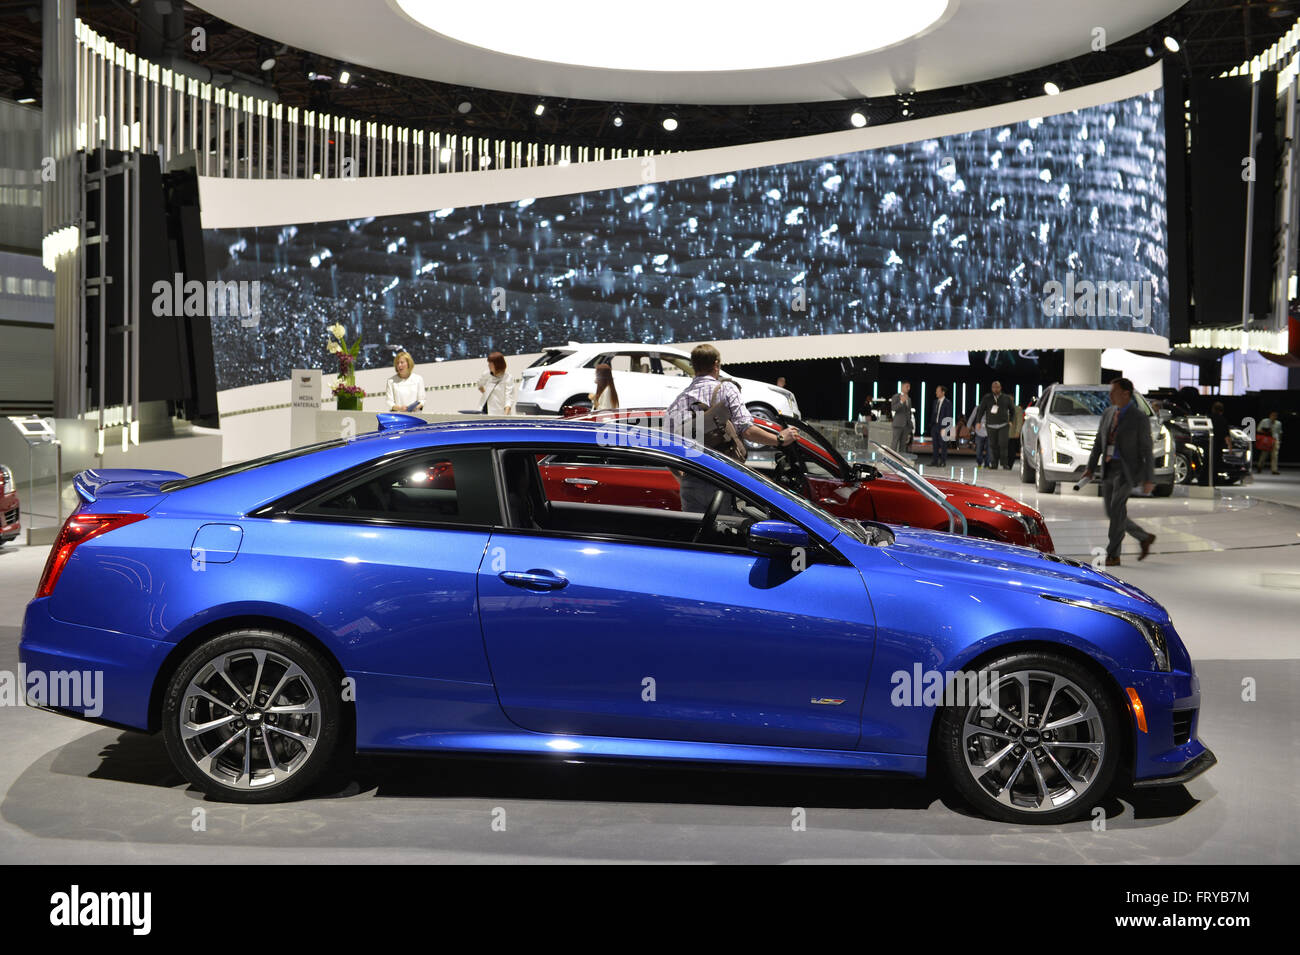 manhattan new york usa 23rd mar 2016 blue cadillac ats v coupe stock photo royalty free. Black Bedroom Furniture Sets. Home Design Ideas